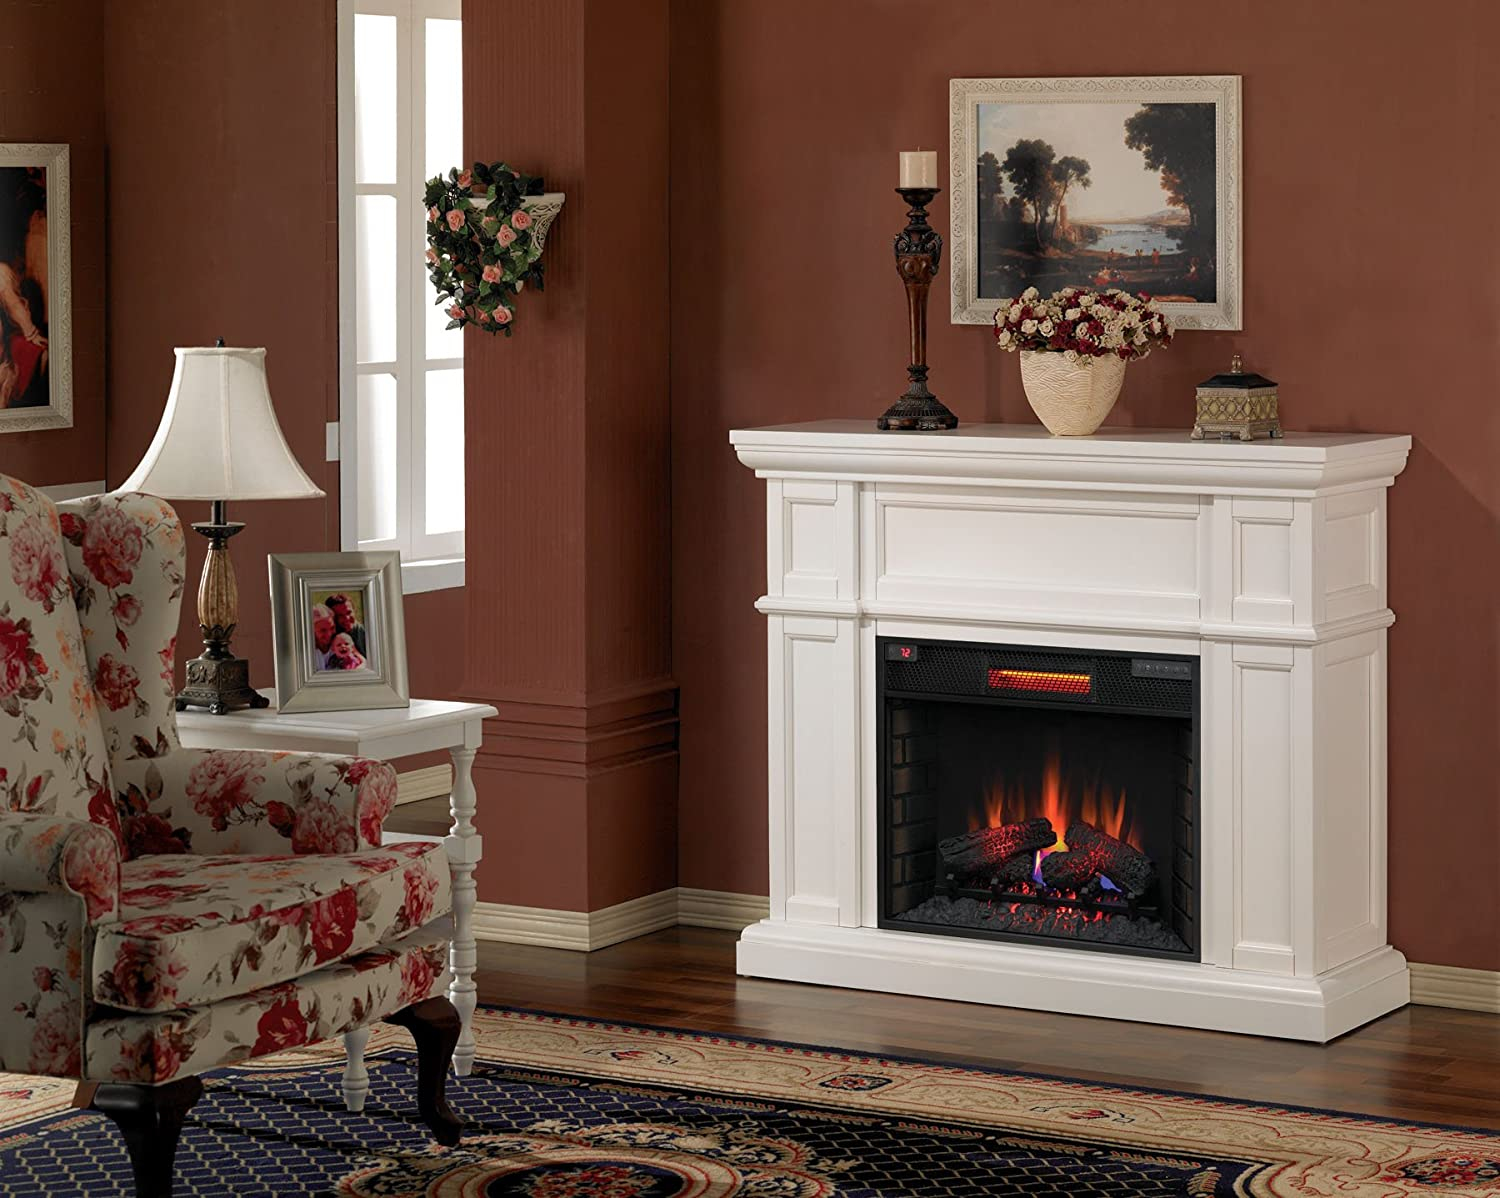 Amazon.com: ClassicFlame 28WM426 T401 Artesian Wall Fireplace Mantel, White  (Electric Fireplace Insert Sold Separately): Kitchen U0026 Dining